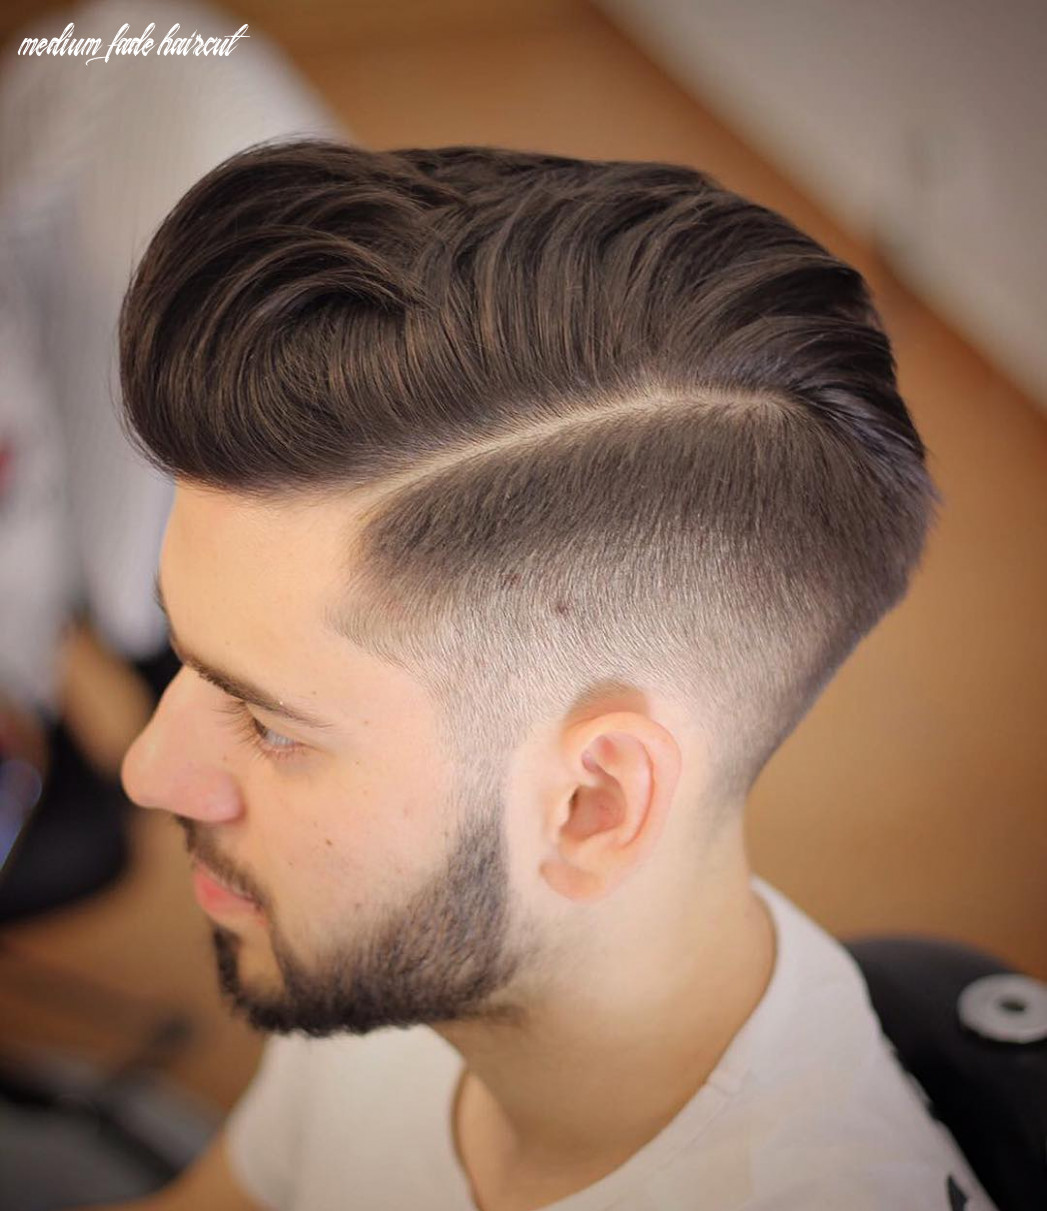 What Is Mid Fade? 10 Best Medium Fade Haircuts - Men's Hairstyles